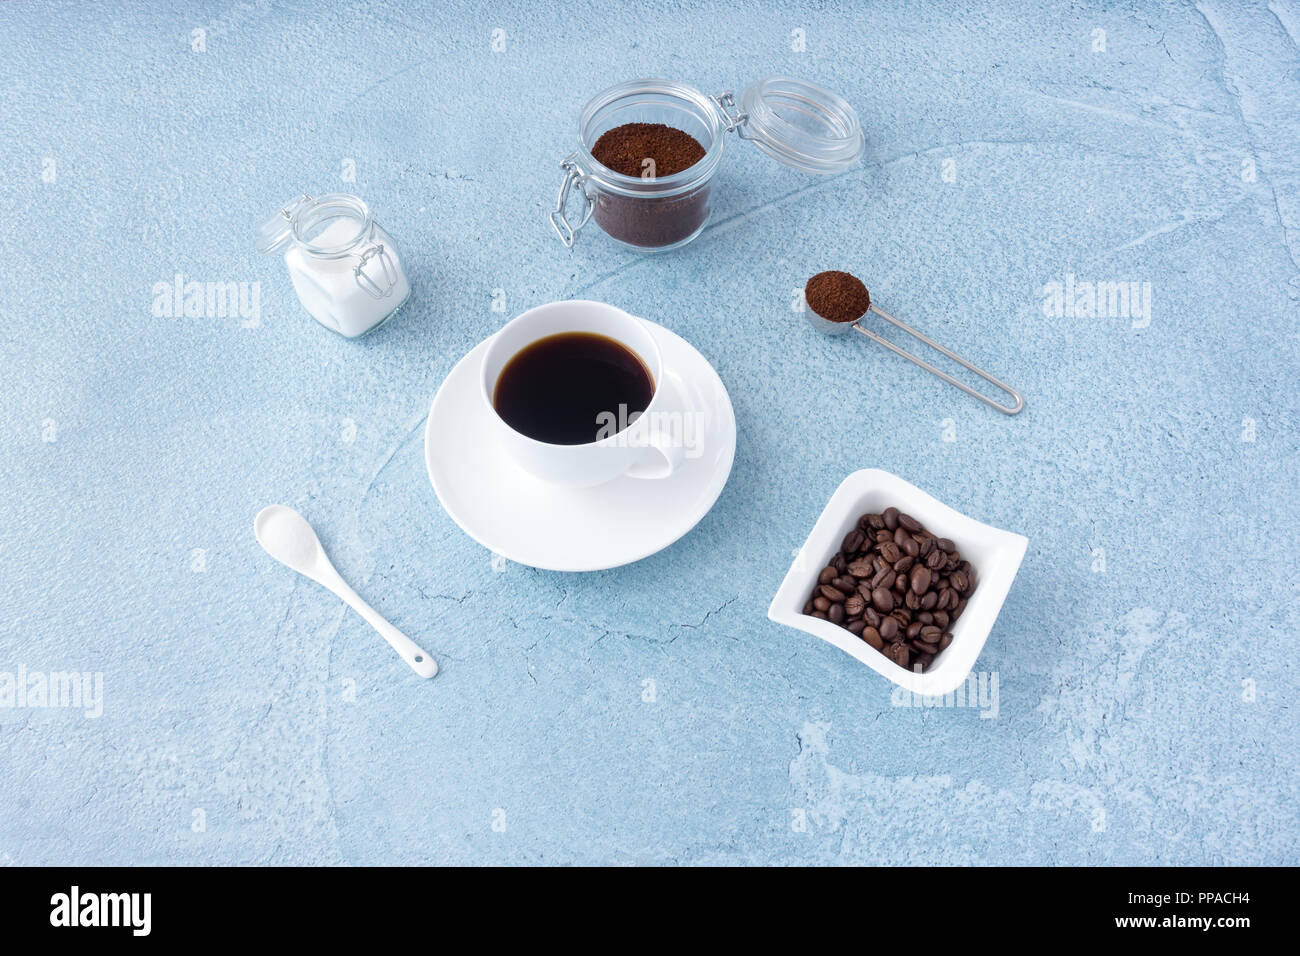 Coffee cup filled with black coffee, sugar, ground coffee and coffee beans on blue concrete background. - Stock Image